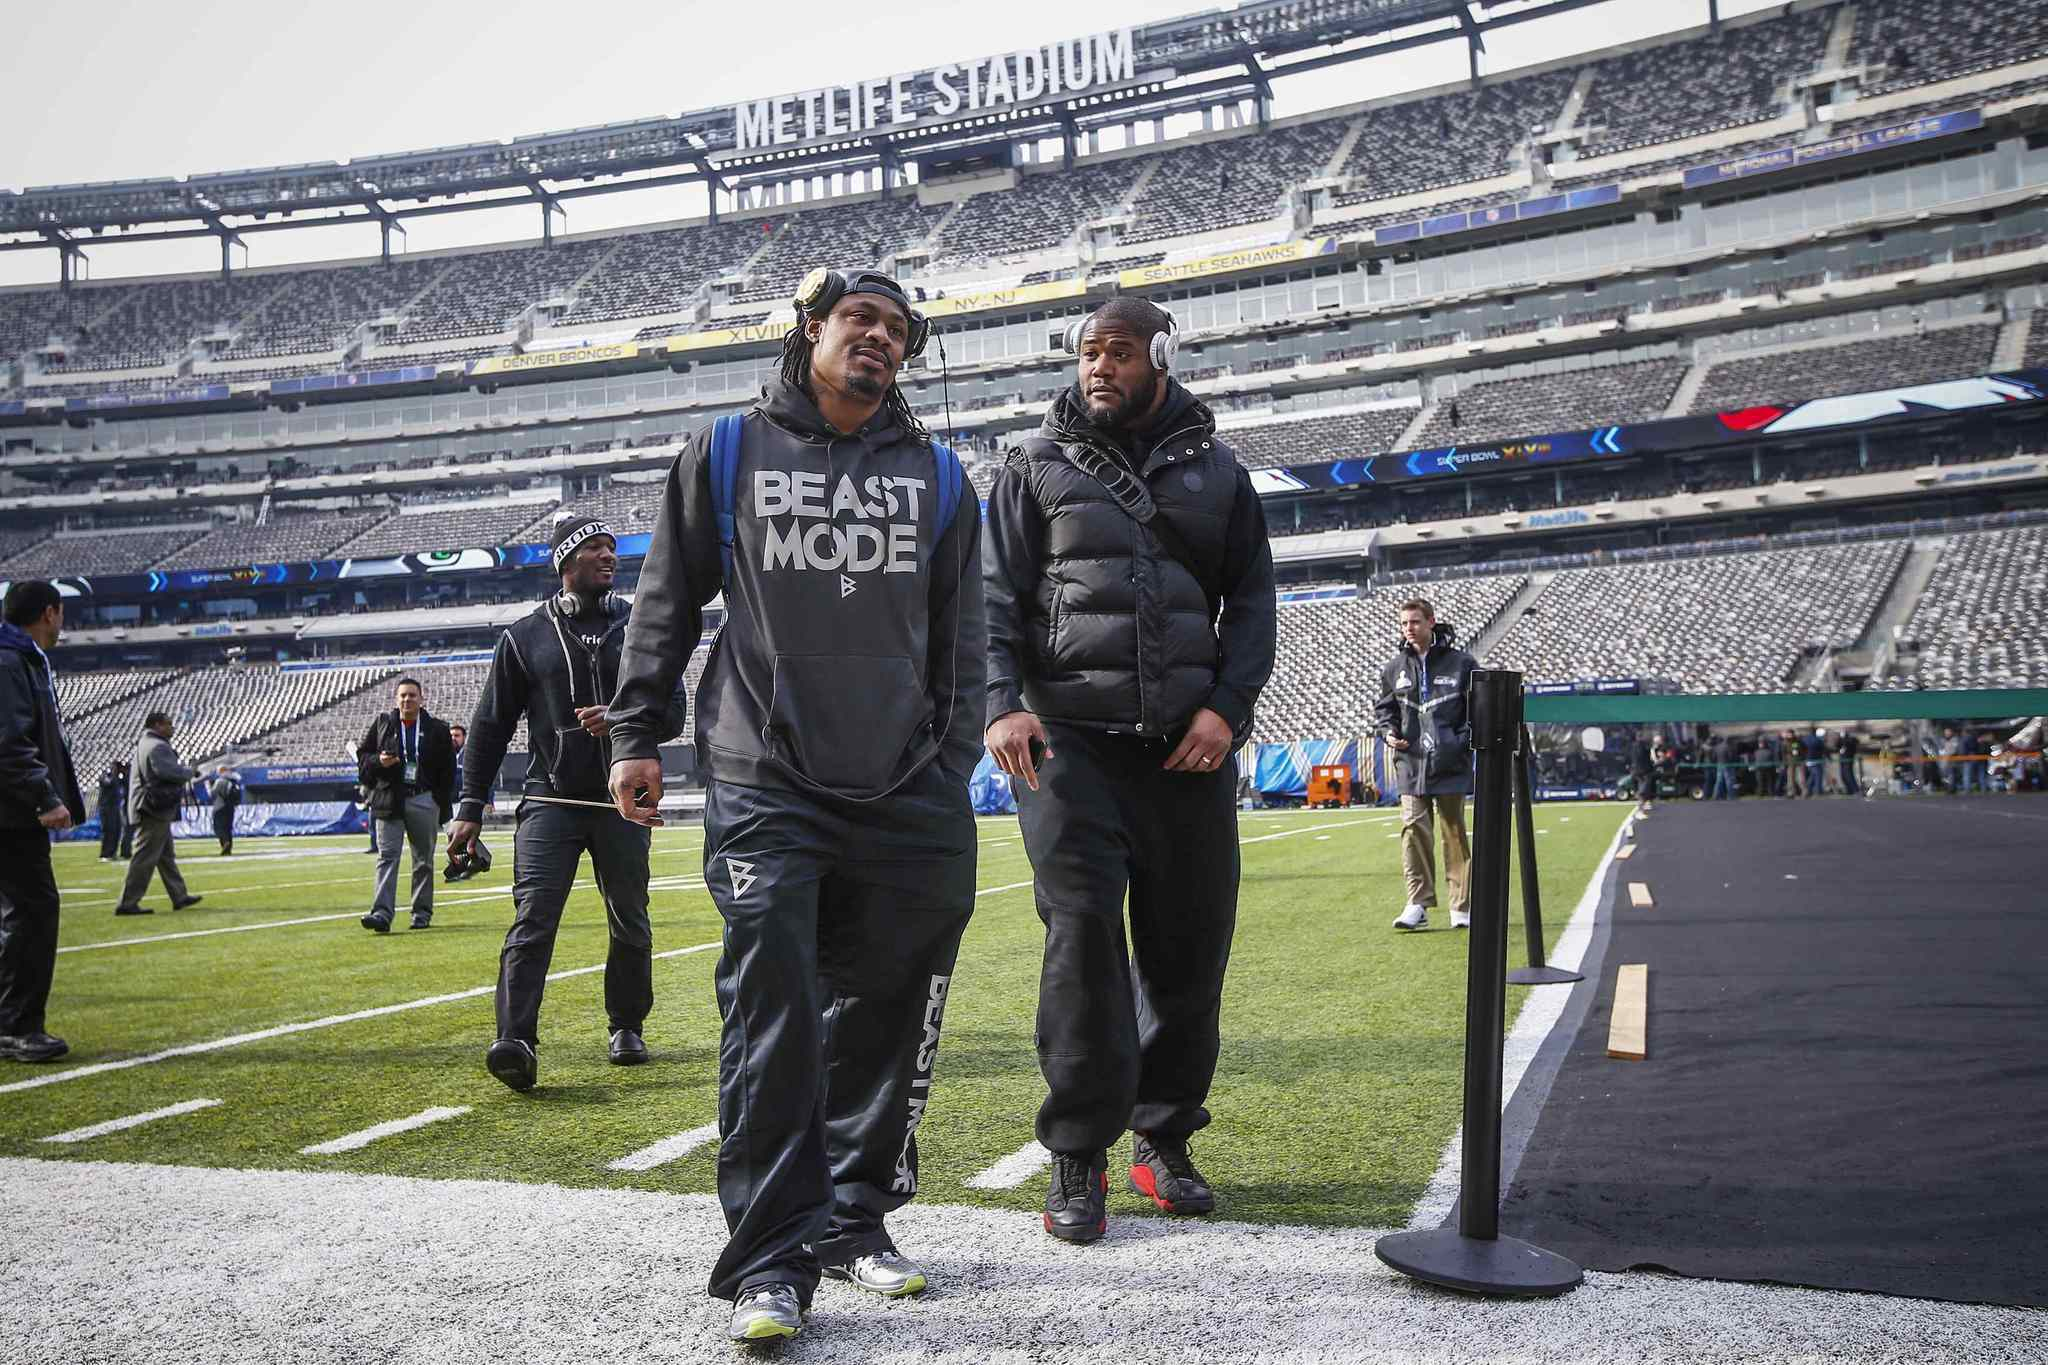 Seattle Seahawks running back Marshawn Lynch (C) walks off the field at the MetLife Stadium during their NFL Super Bowl XLVIII walk-through in East Rutherford, New Jersey February 1, 2014. The Seahawks will play against the Denver Broncos in the game on February 2.